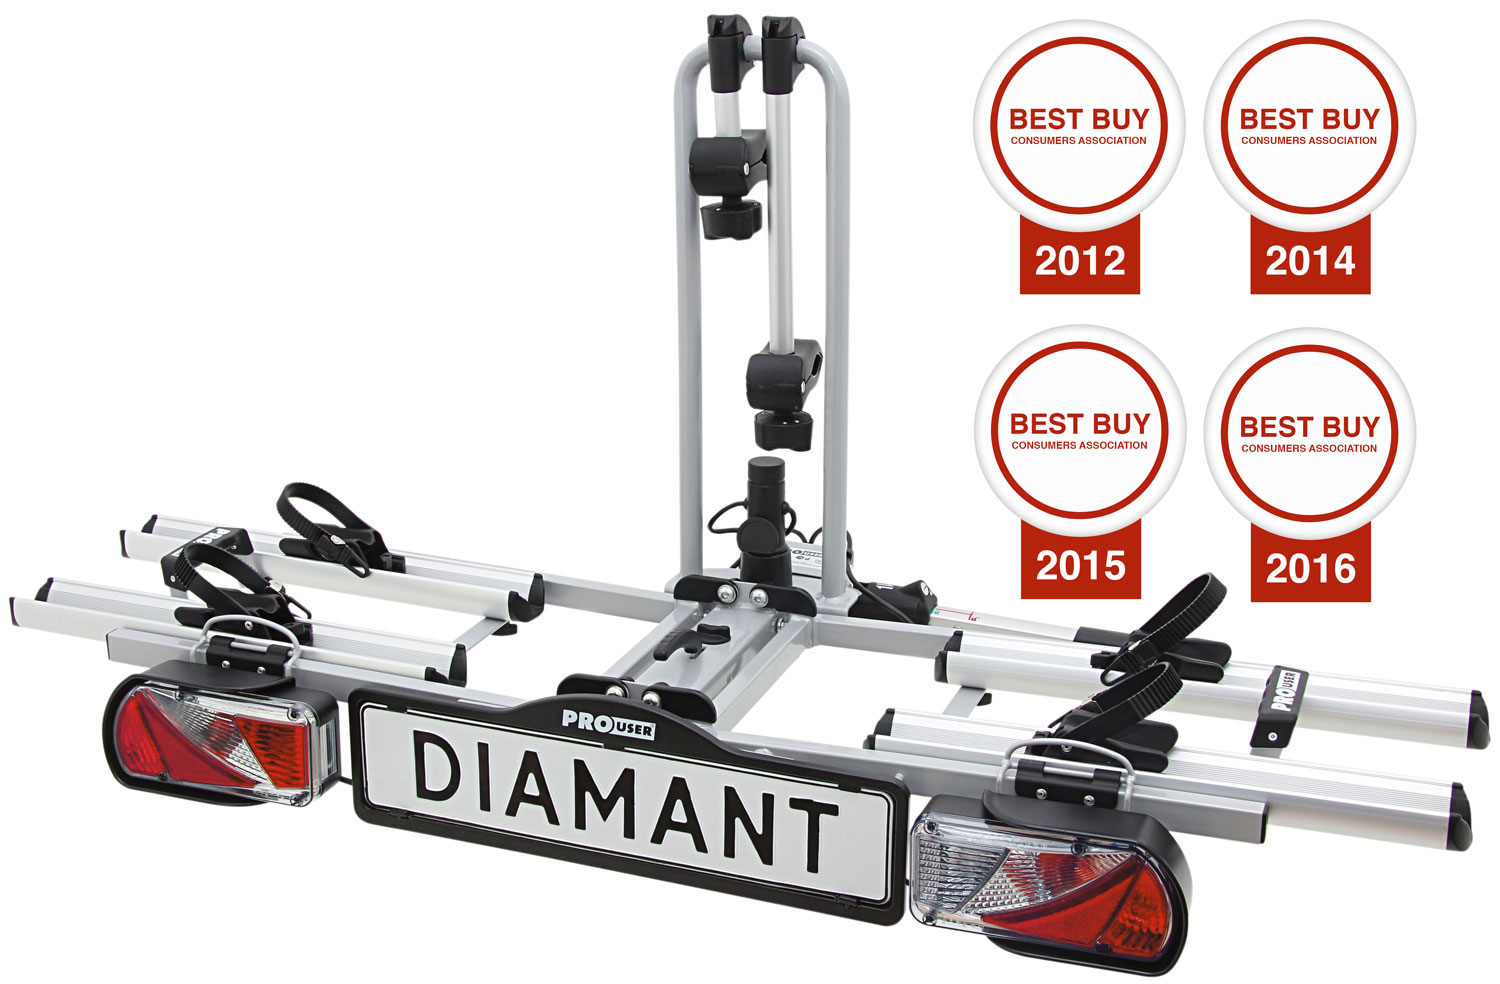 Pro User Prouser Diamant Two Bike Rack